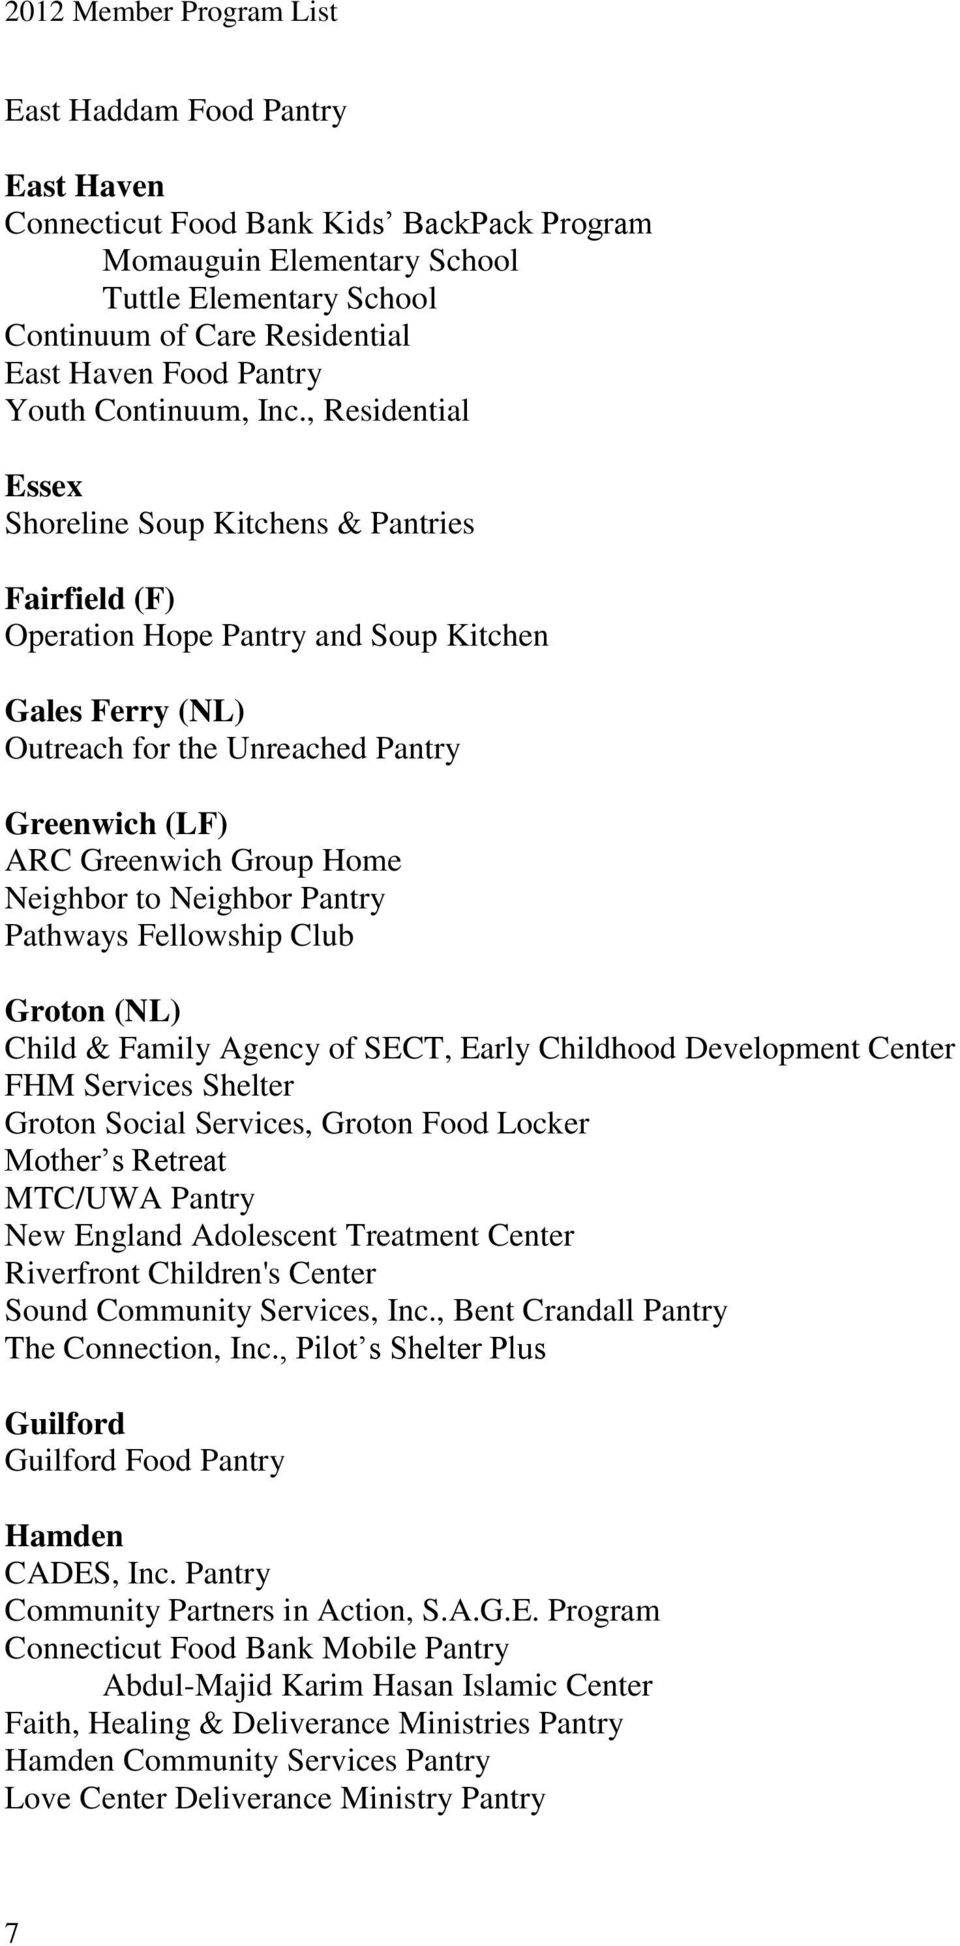 Neighbor to Neighbor Pantry Pathways Fellowship Club Groton (NL) Child & Family Agency of SECT, Early Childhood Development Center FHM Services Shelter Groton Social Services, Groton Food Locker